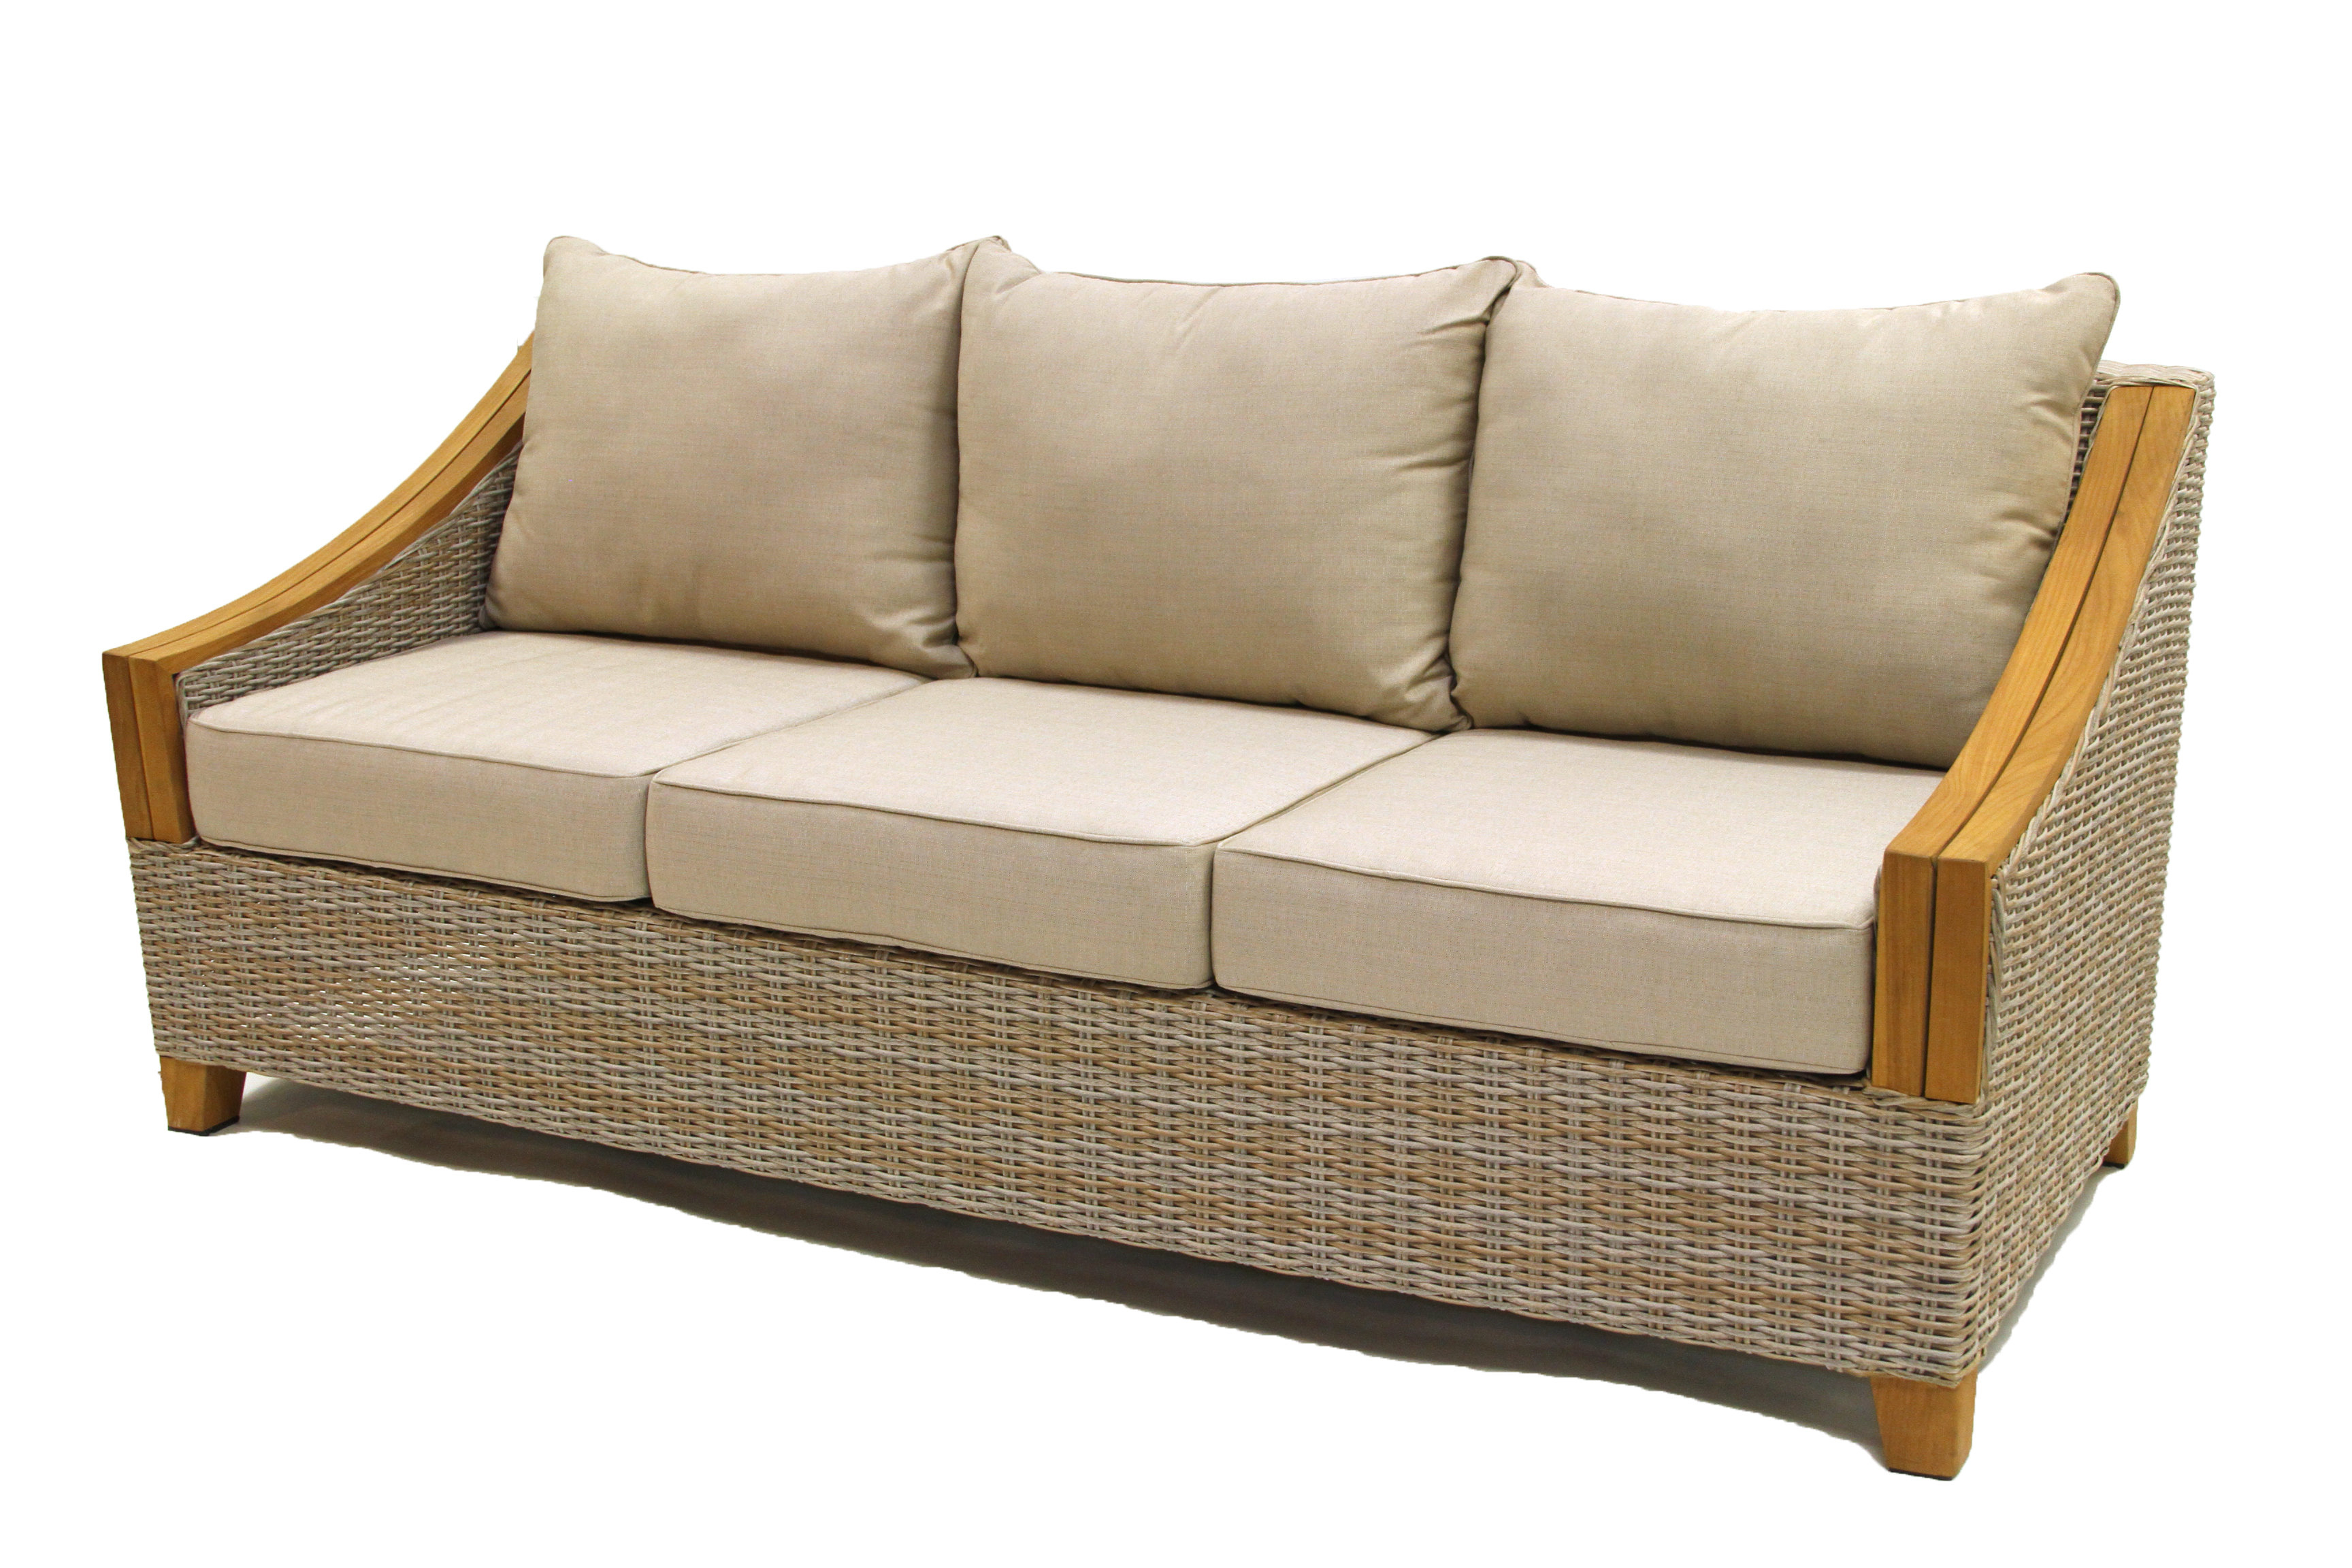 Trendy Farmhouse & Rustic Teak Outdoor Sofas (View 18 of 20)